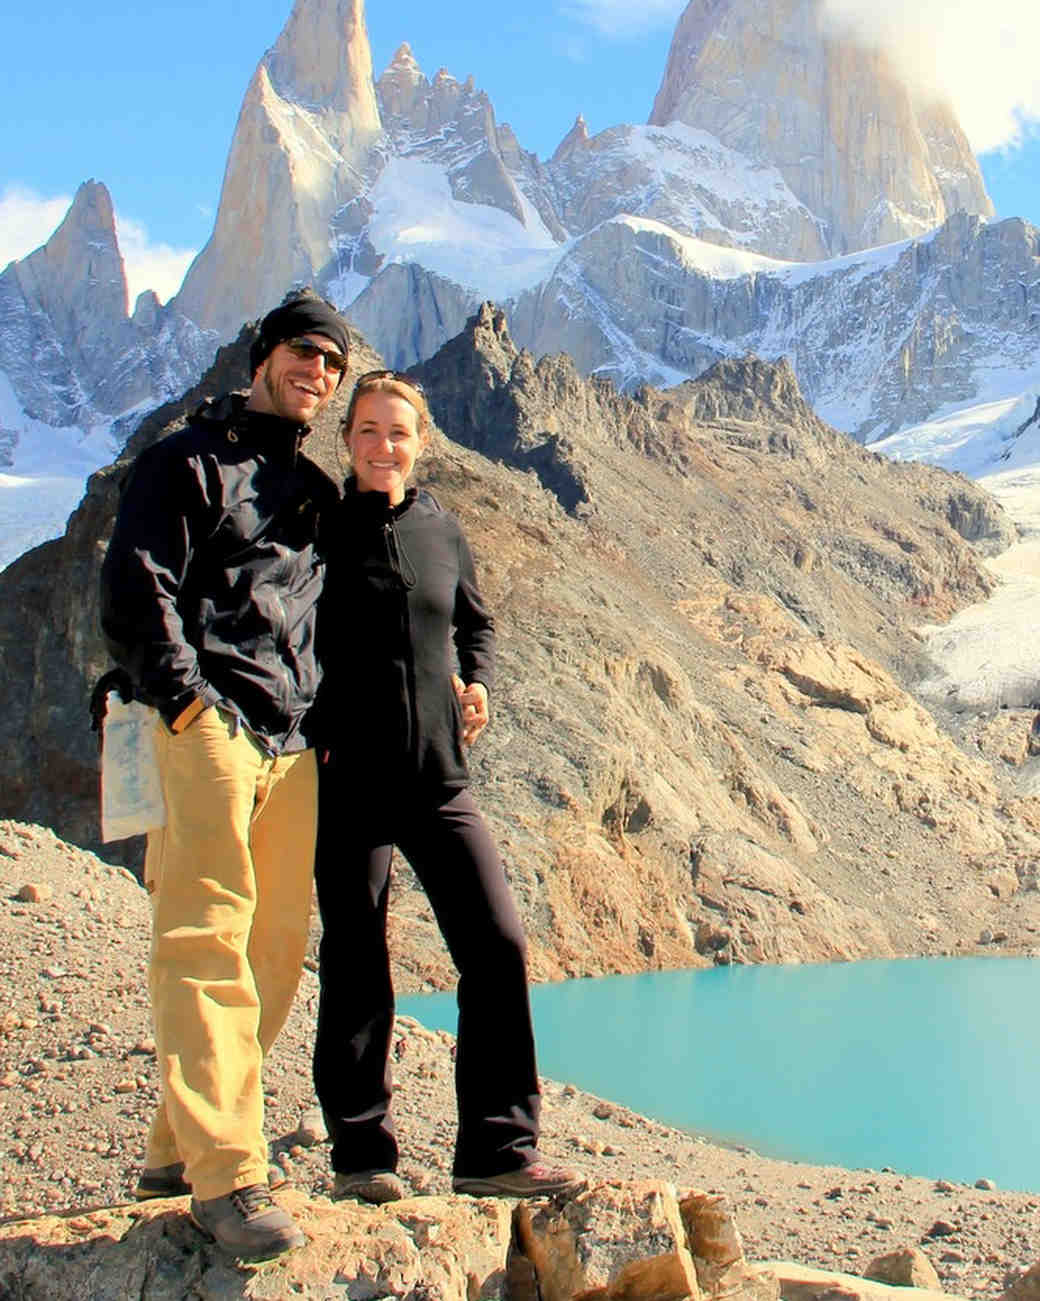 15 Travel Tips from the Couple That's on the World's Longest Honeymoon